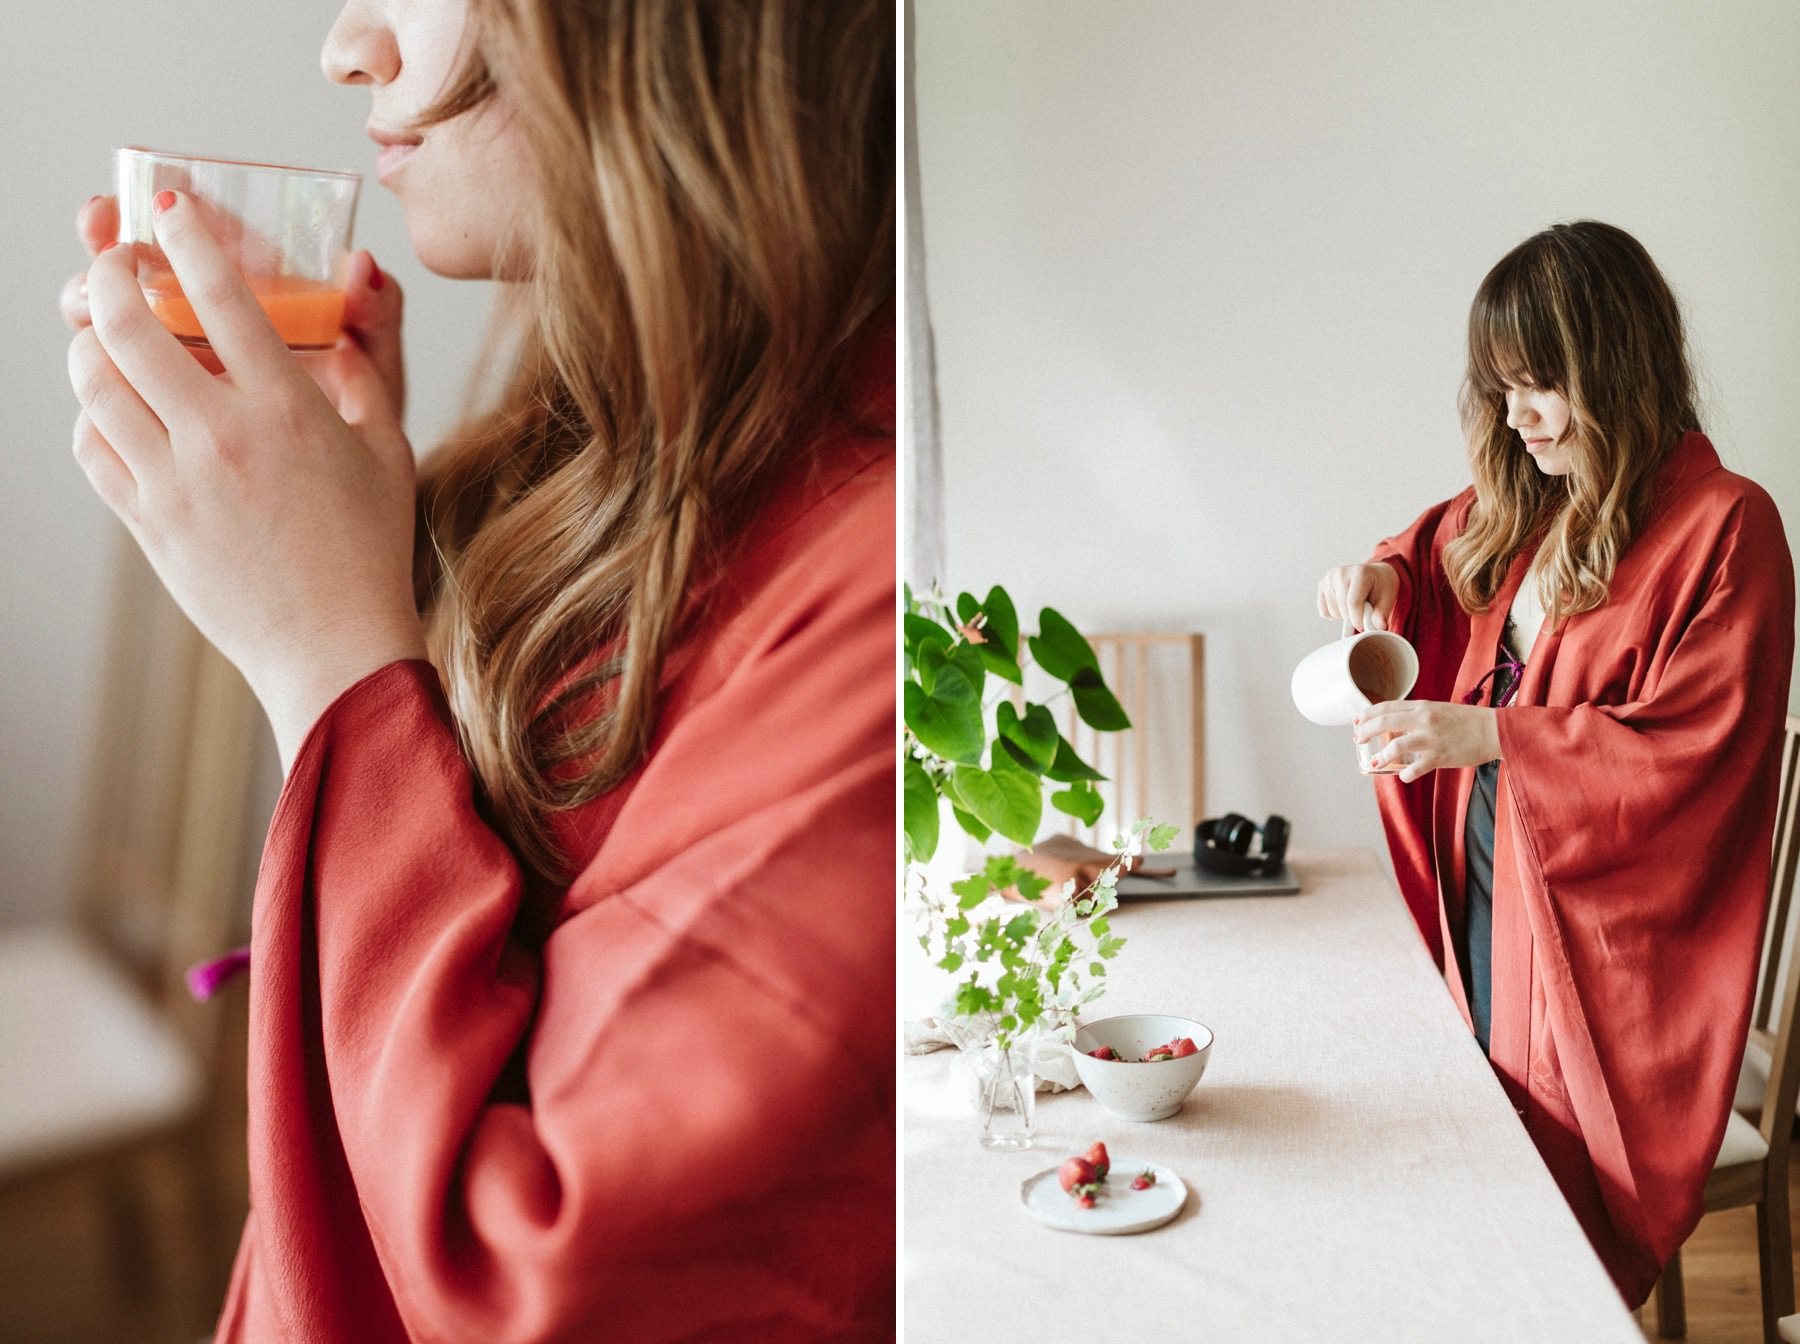 styled indoor lifestyle session